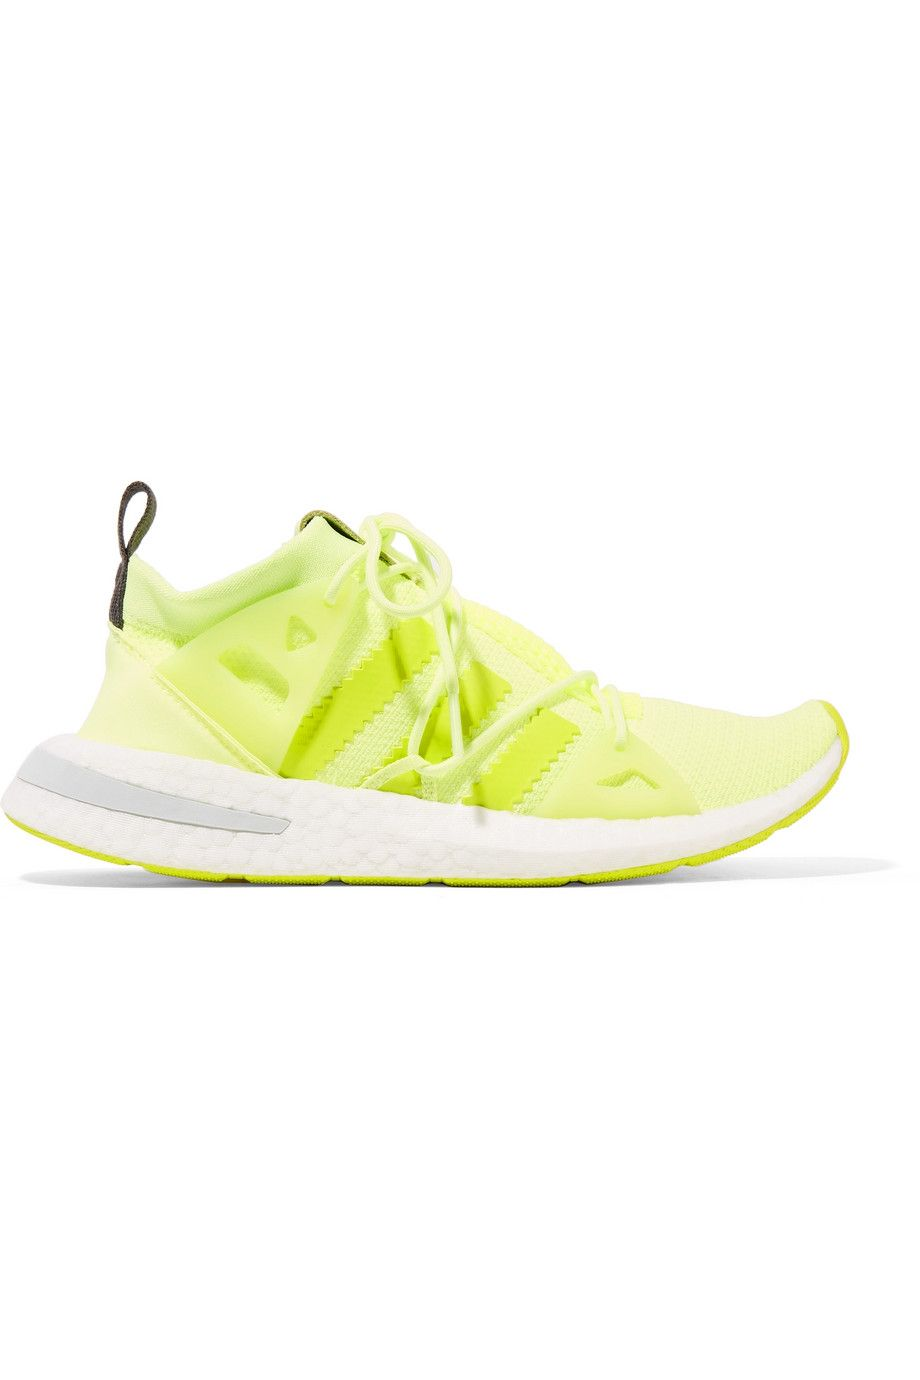 adidas Originals Arkyn rubber trimmed neon mesh sneakers